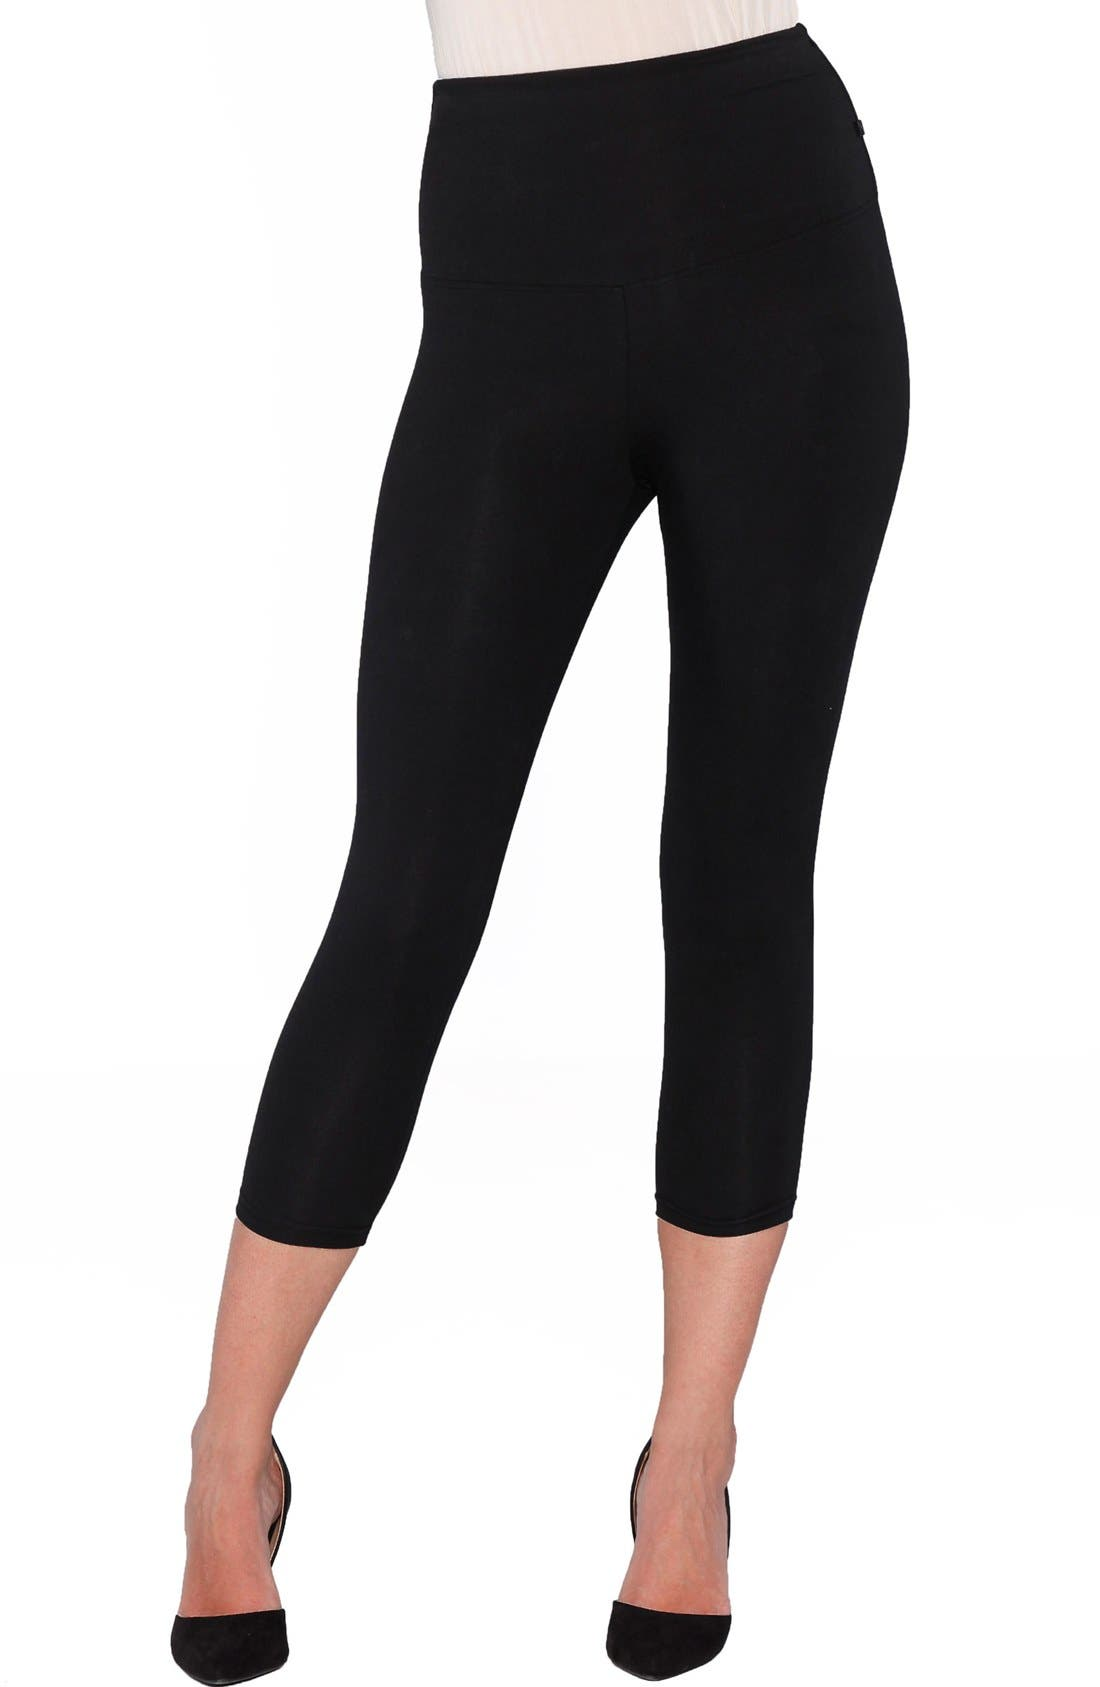 Alternate Image 1 Selected - Angel Maternity 'The Tummy Tight' Capri Postpartum Leggings